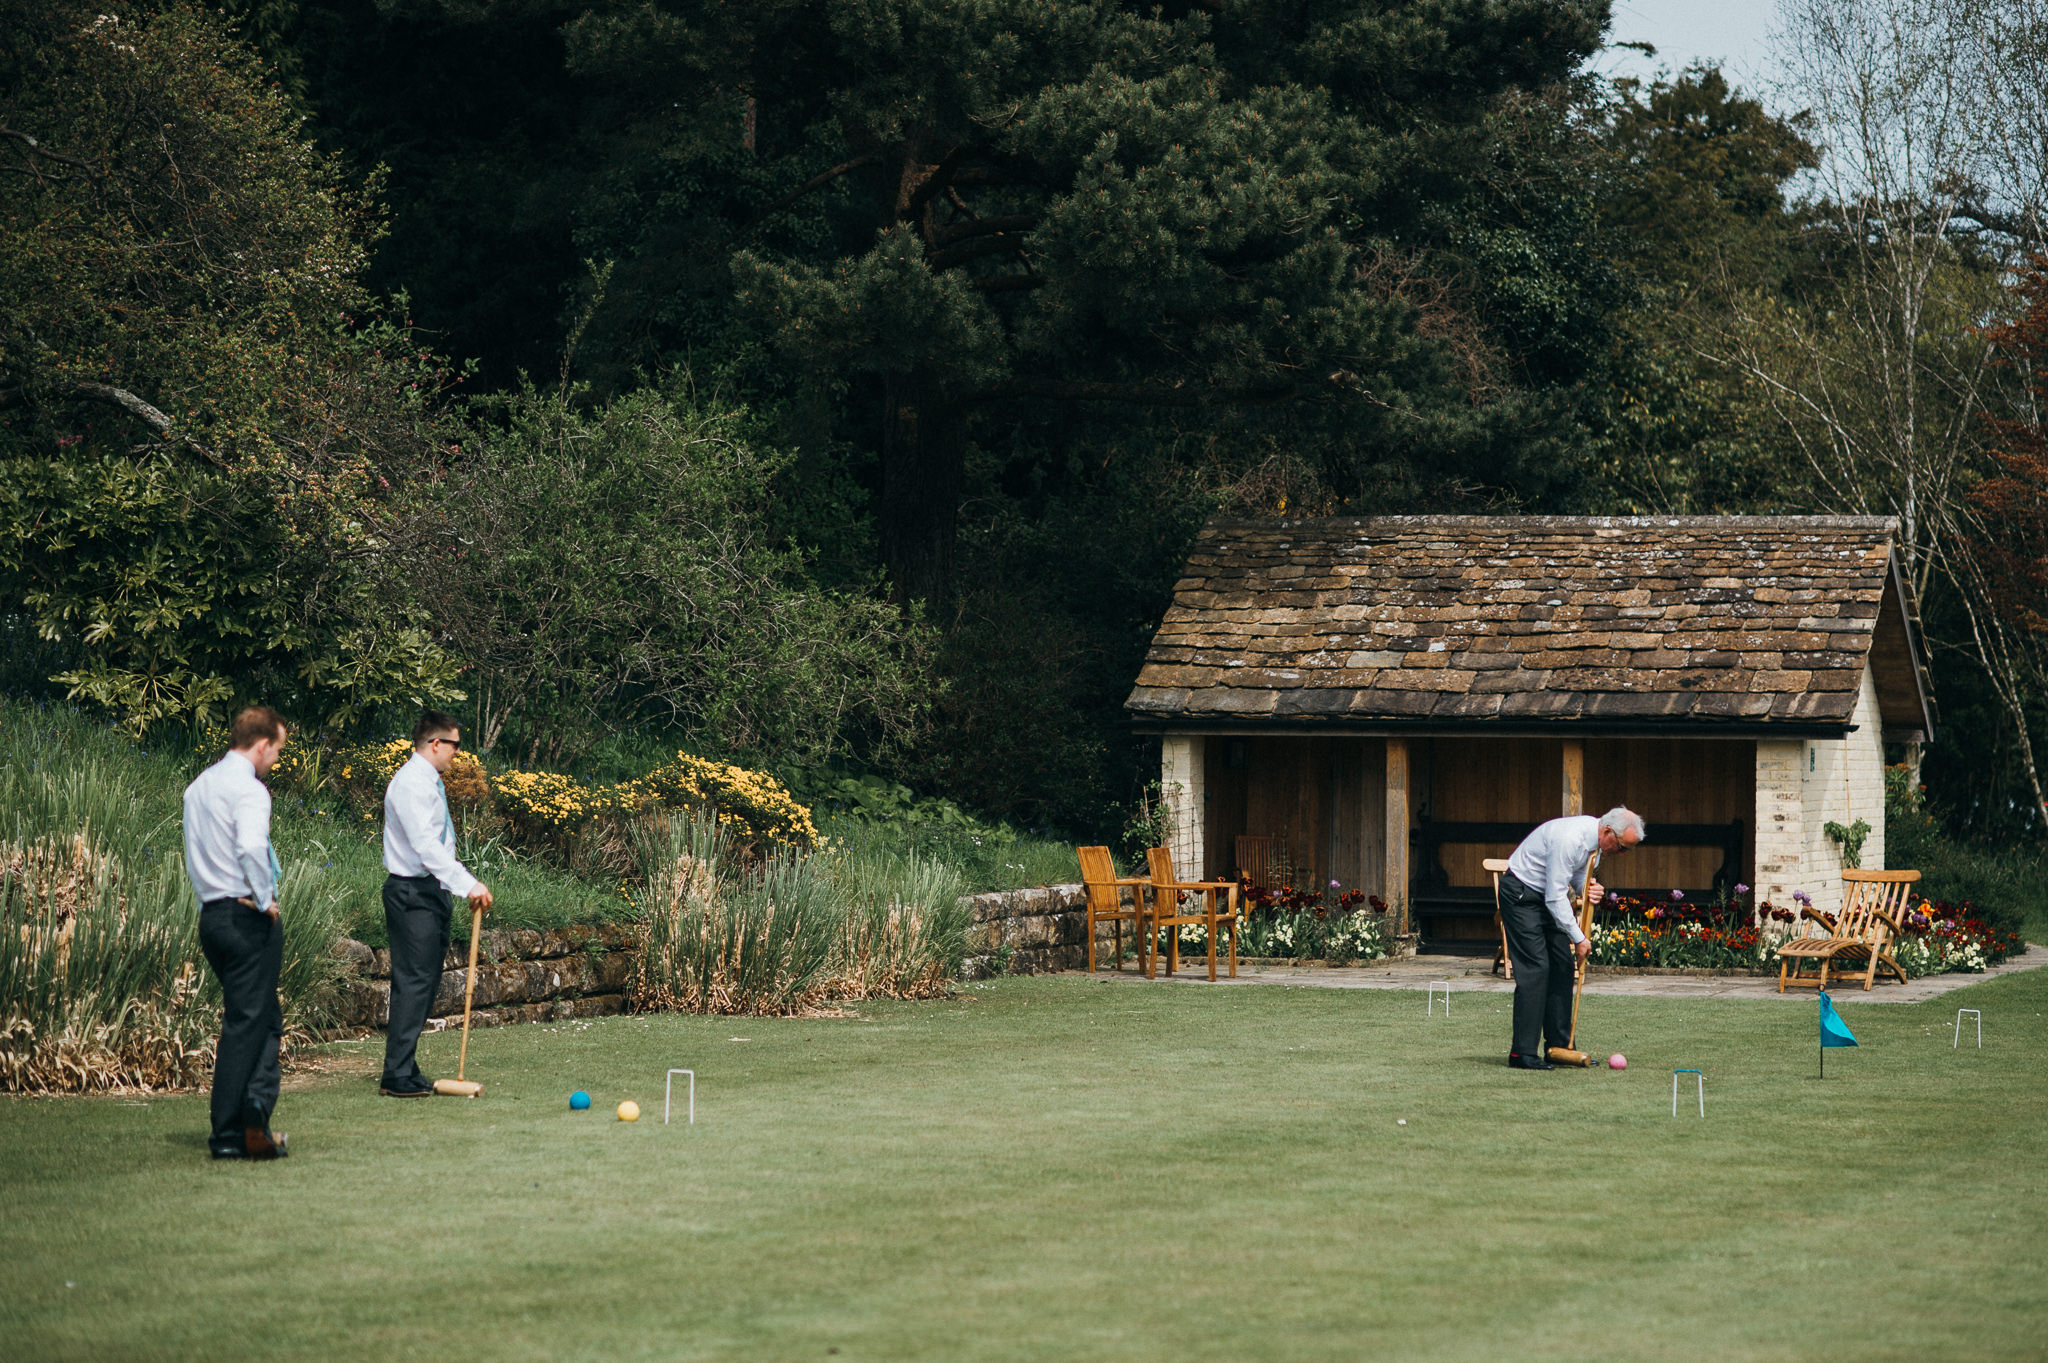 Gravetye Manor croquet lawns